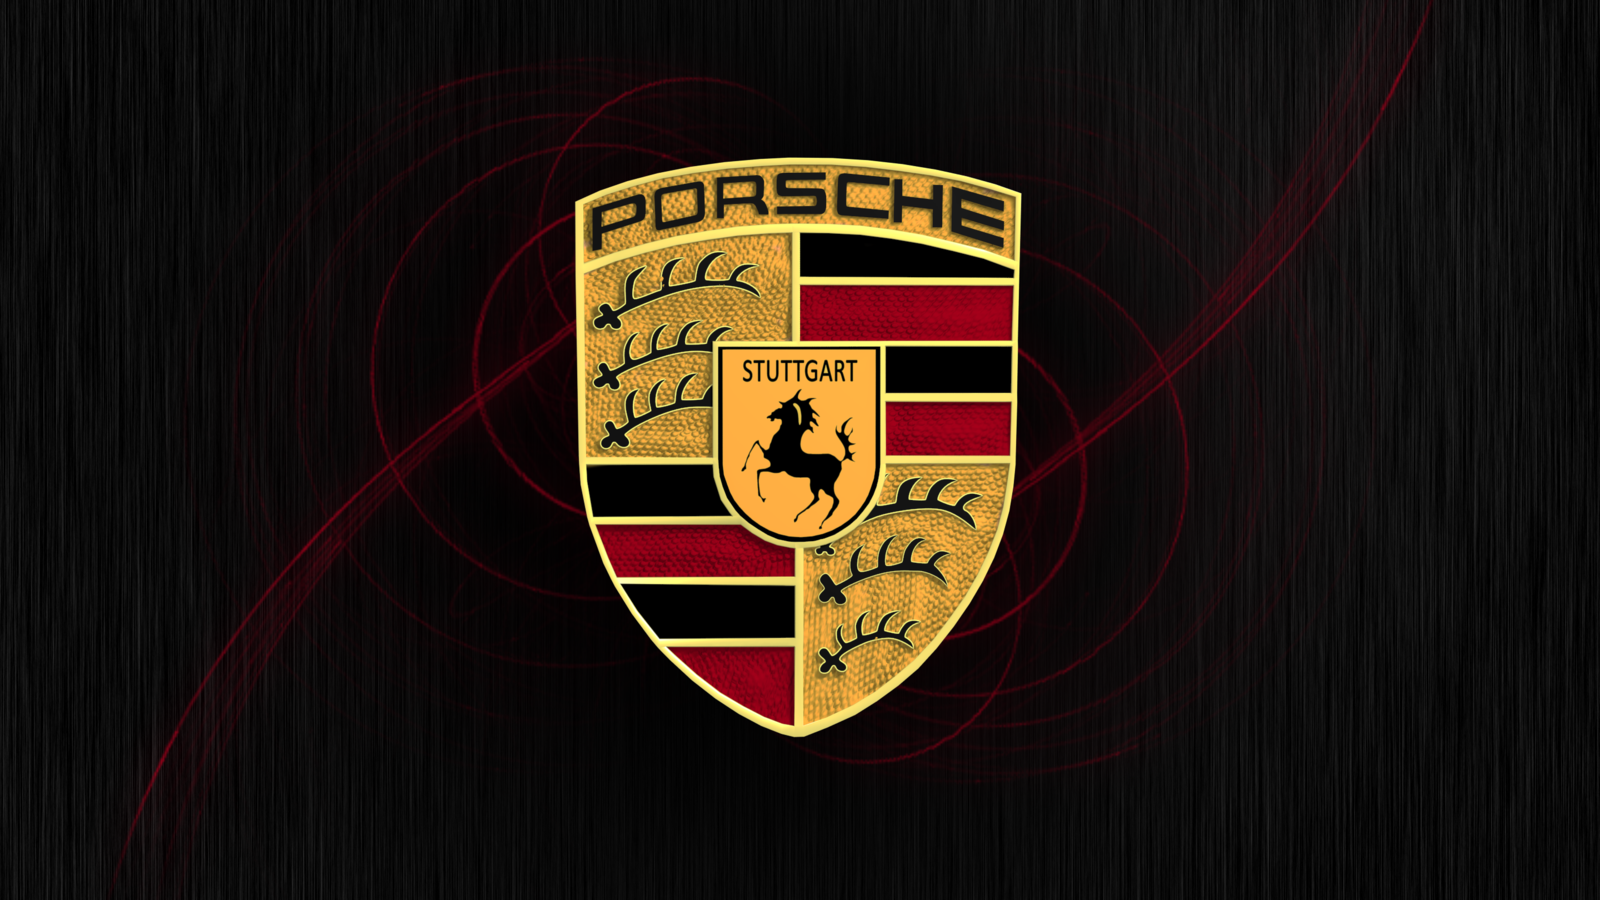 photo searches porsche emblem wallpaper - Porsche Logo Wallpaper Iphone